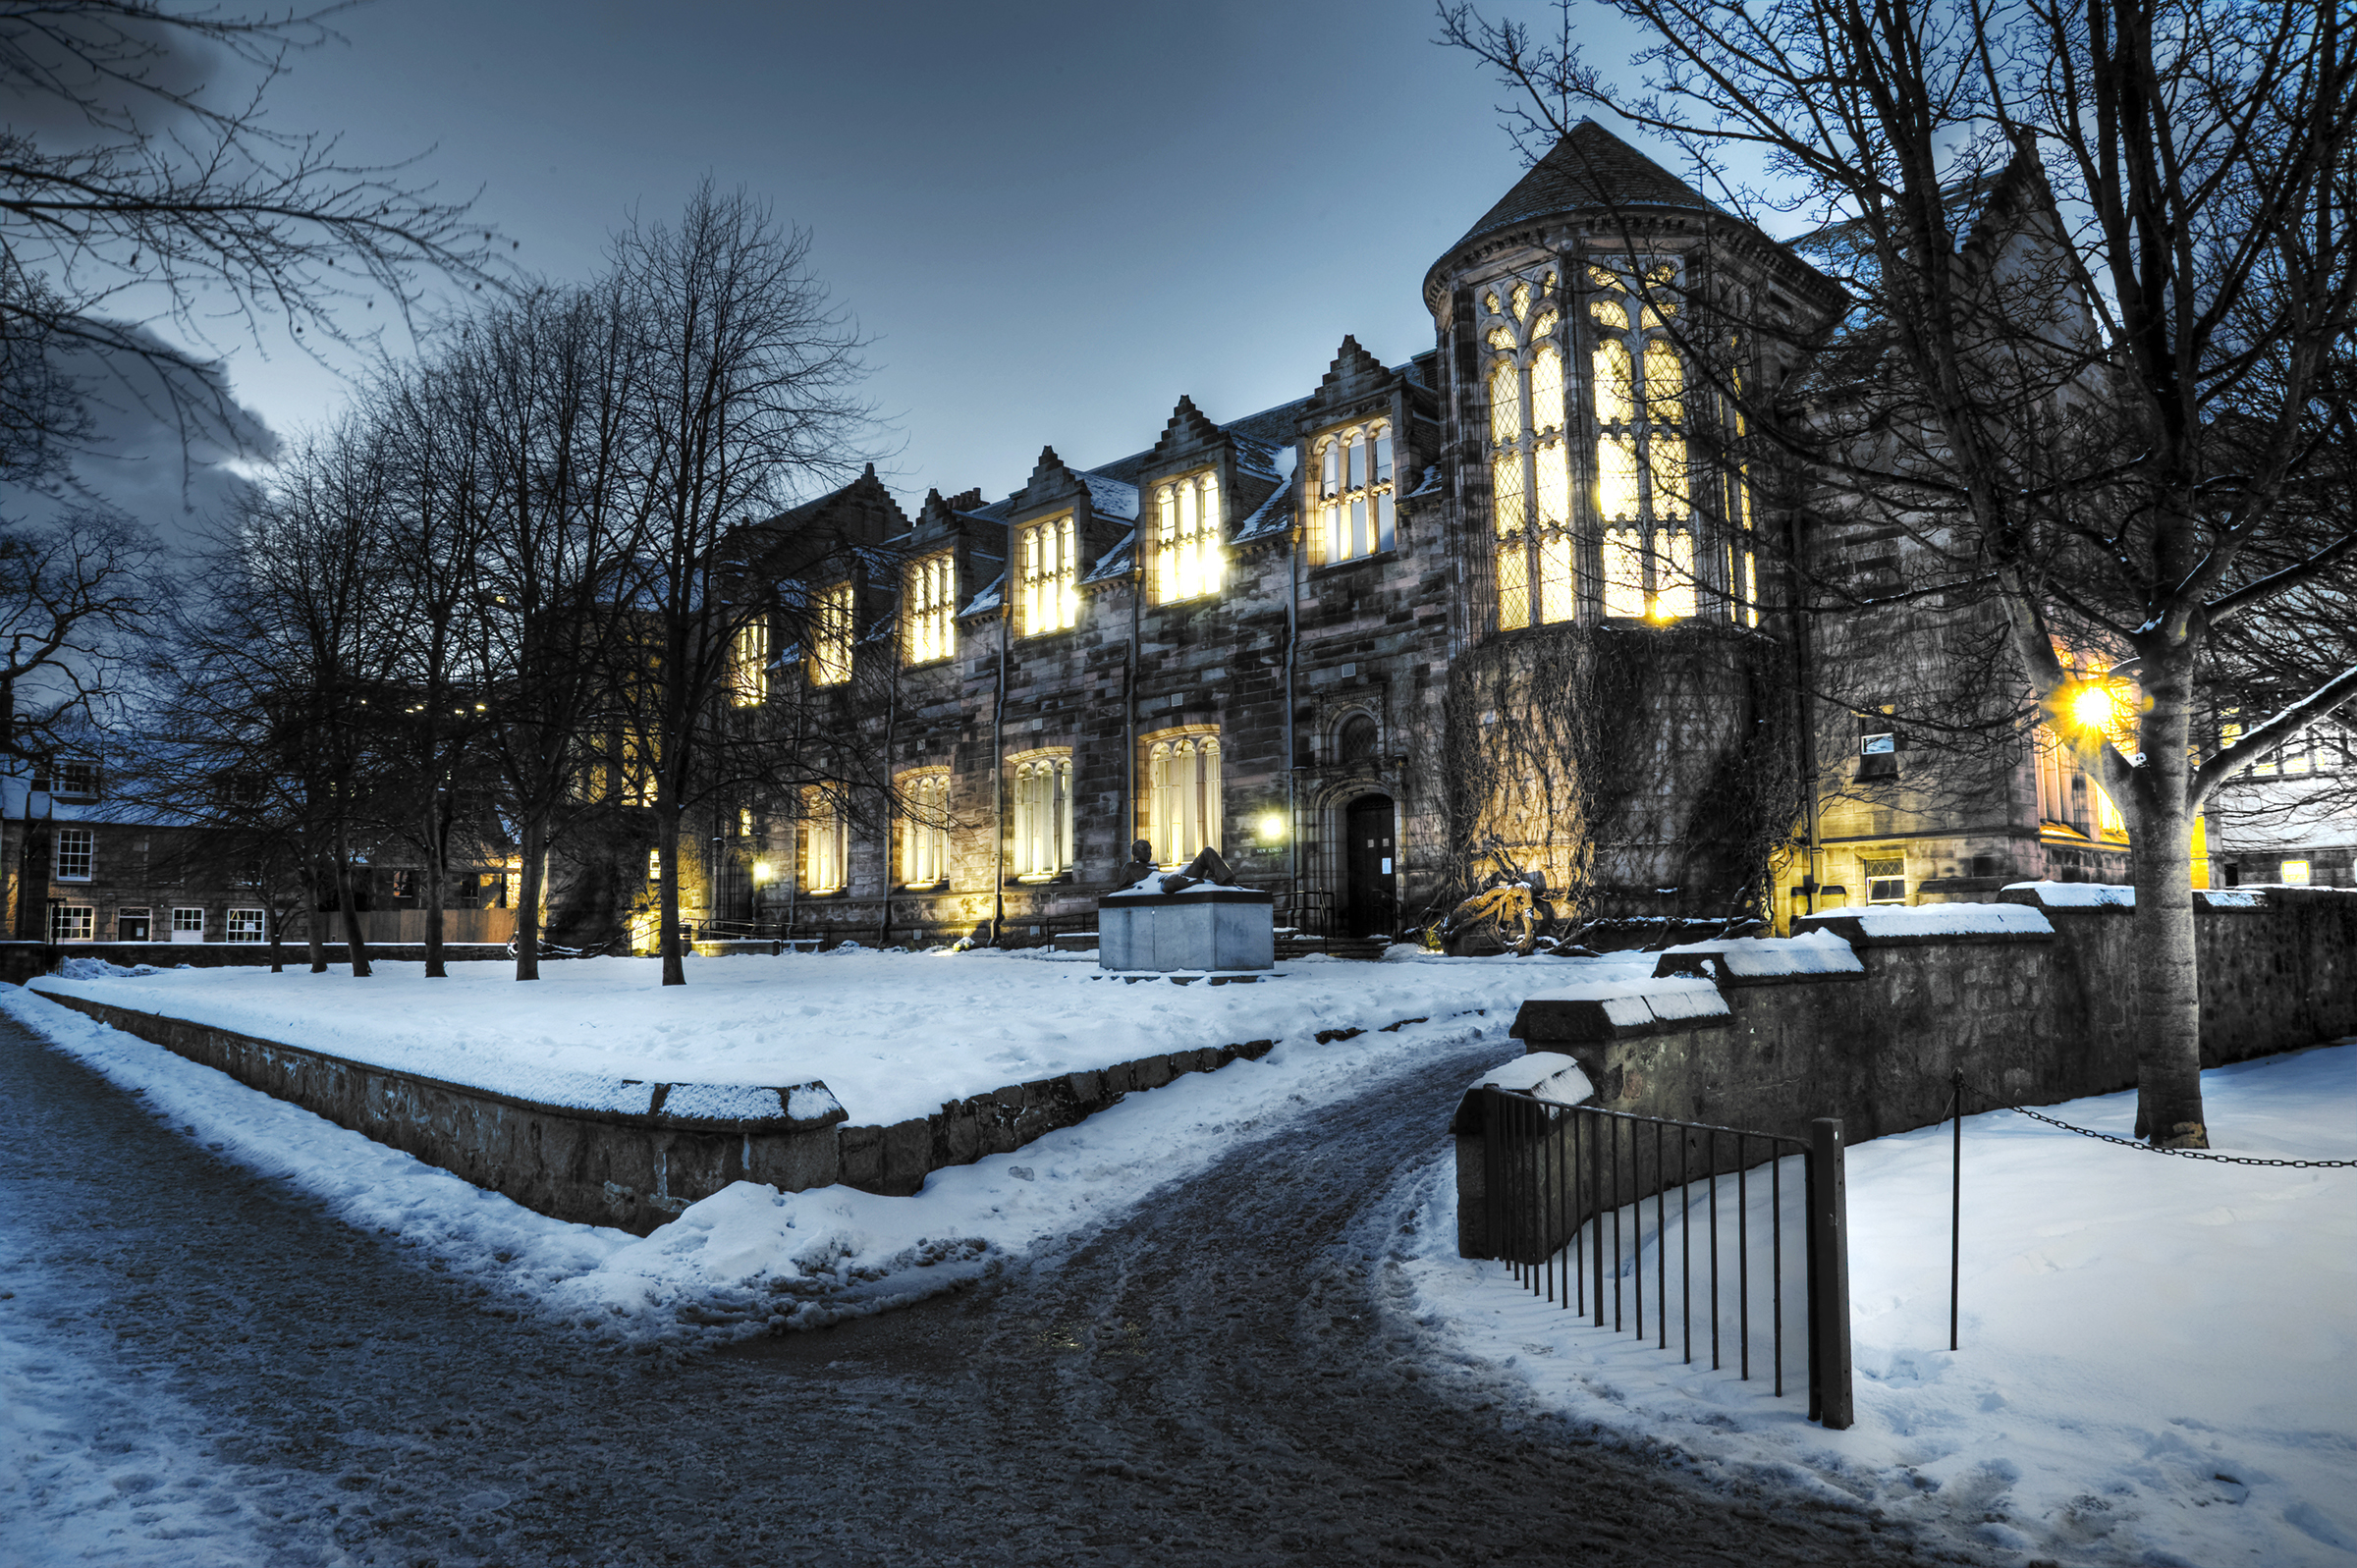 University of Aberdeen building during winter